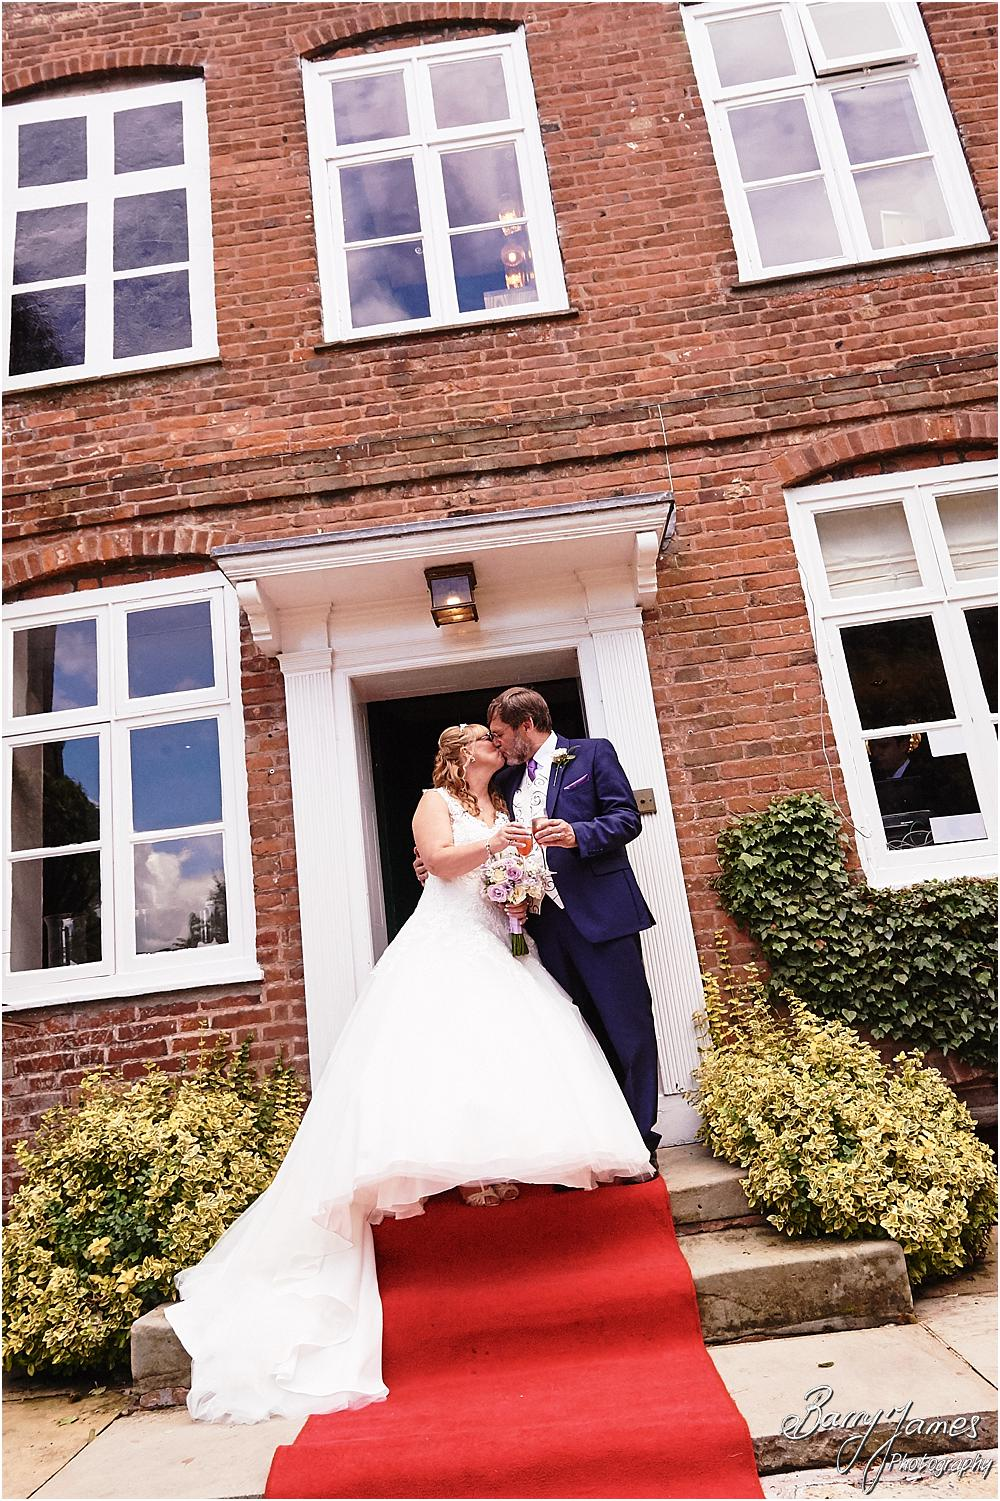 Creative photographs on the grand doorway at Acton Trussell by Stafford Wedding Photographer Barry James